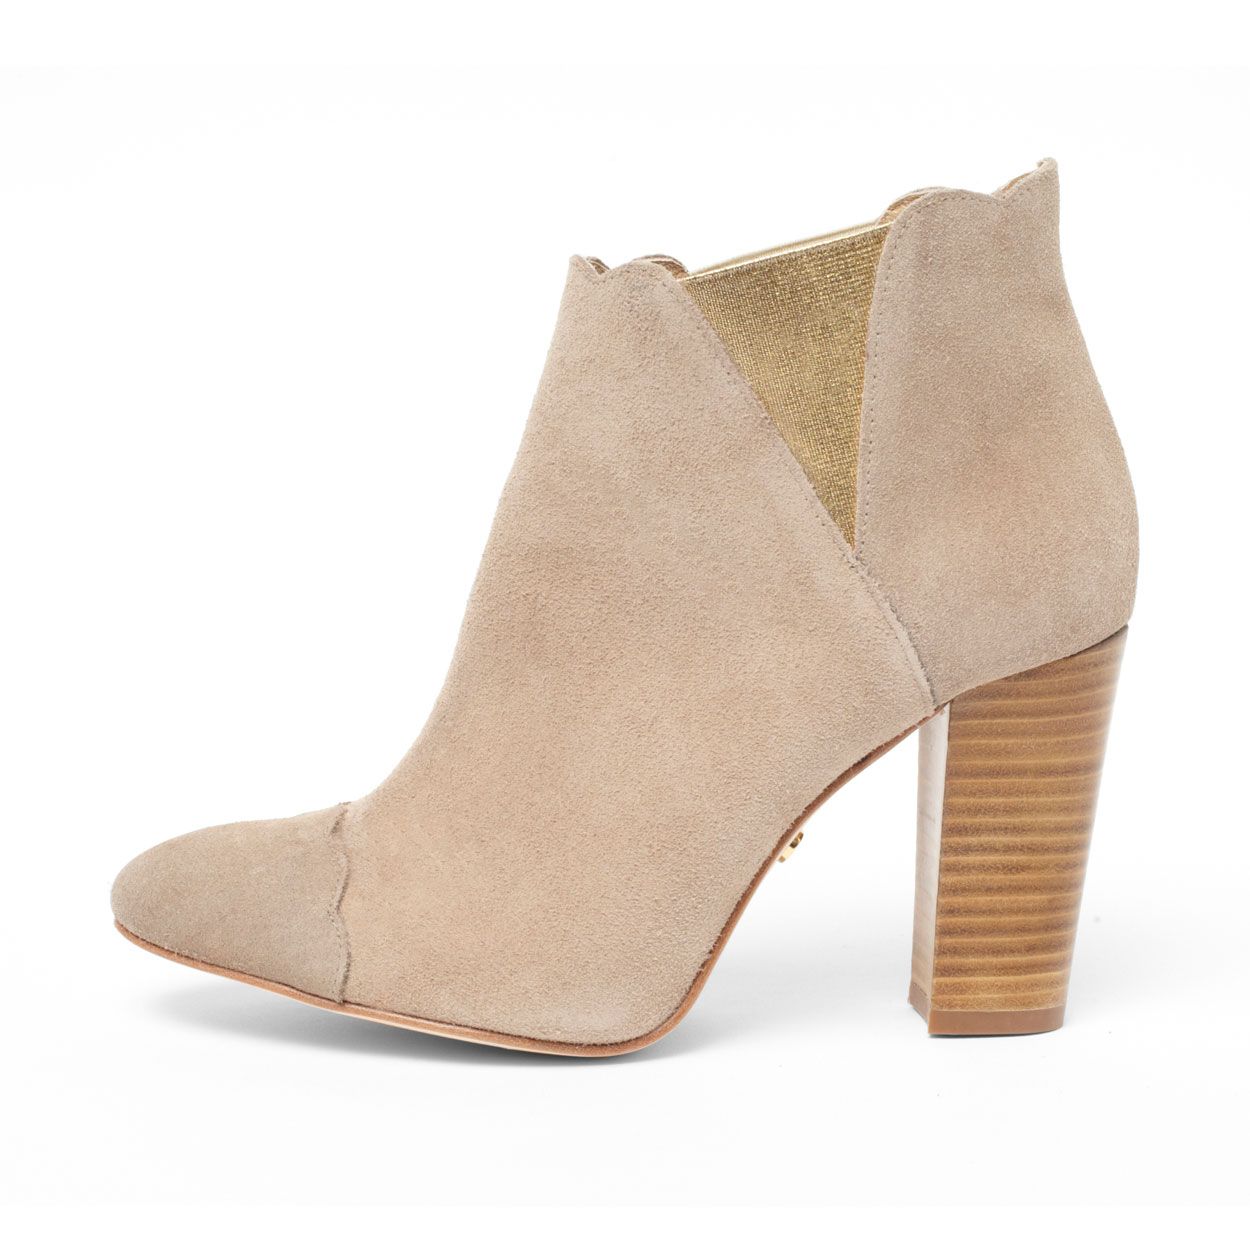 puff-nude-single-boots-shoes-heels-ankle-luxury-cleob.jpg